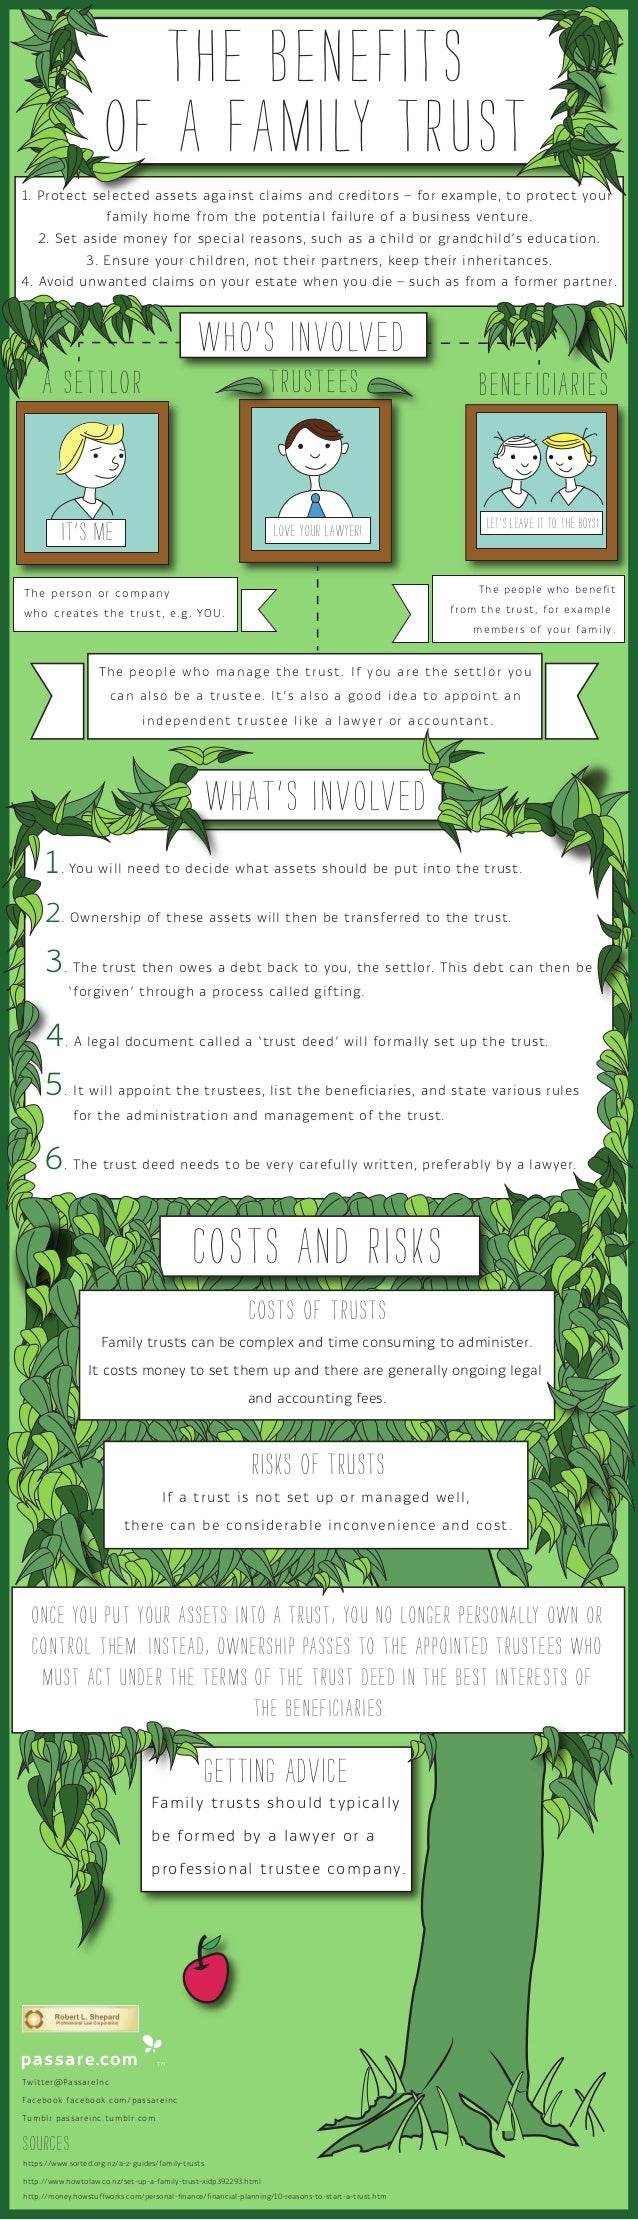 Benefits of a Family Trust - Infographic